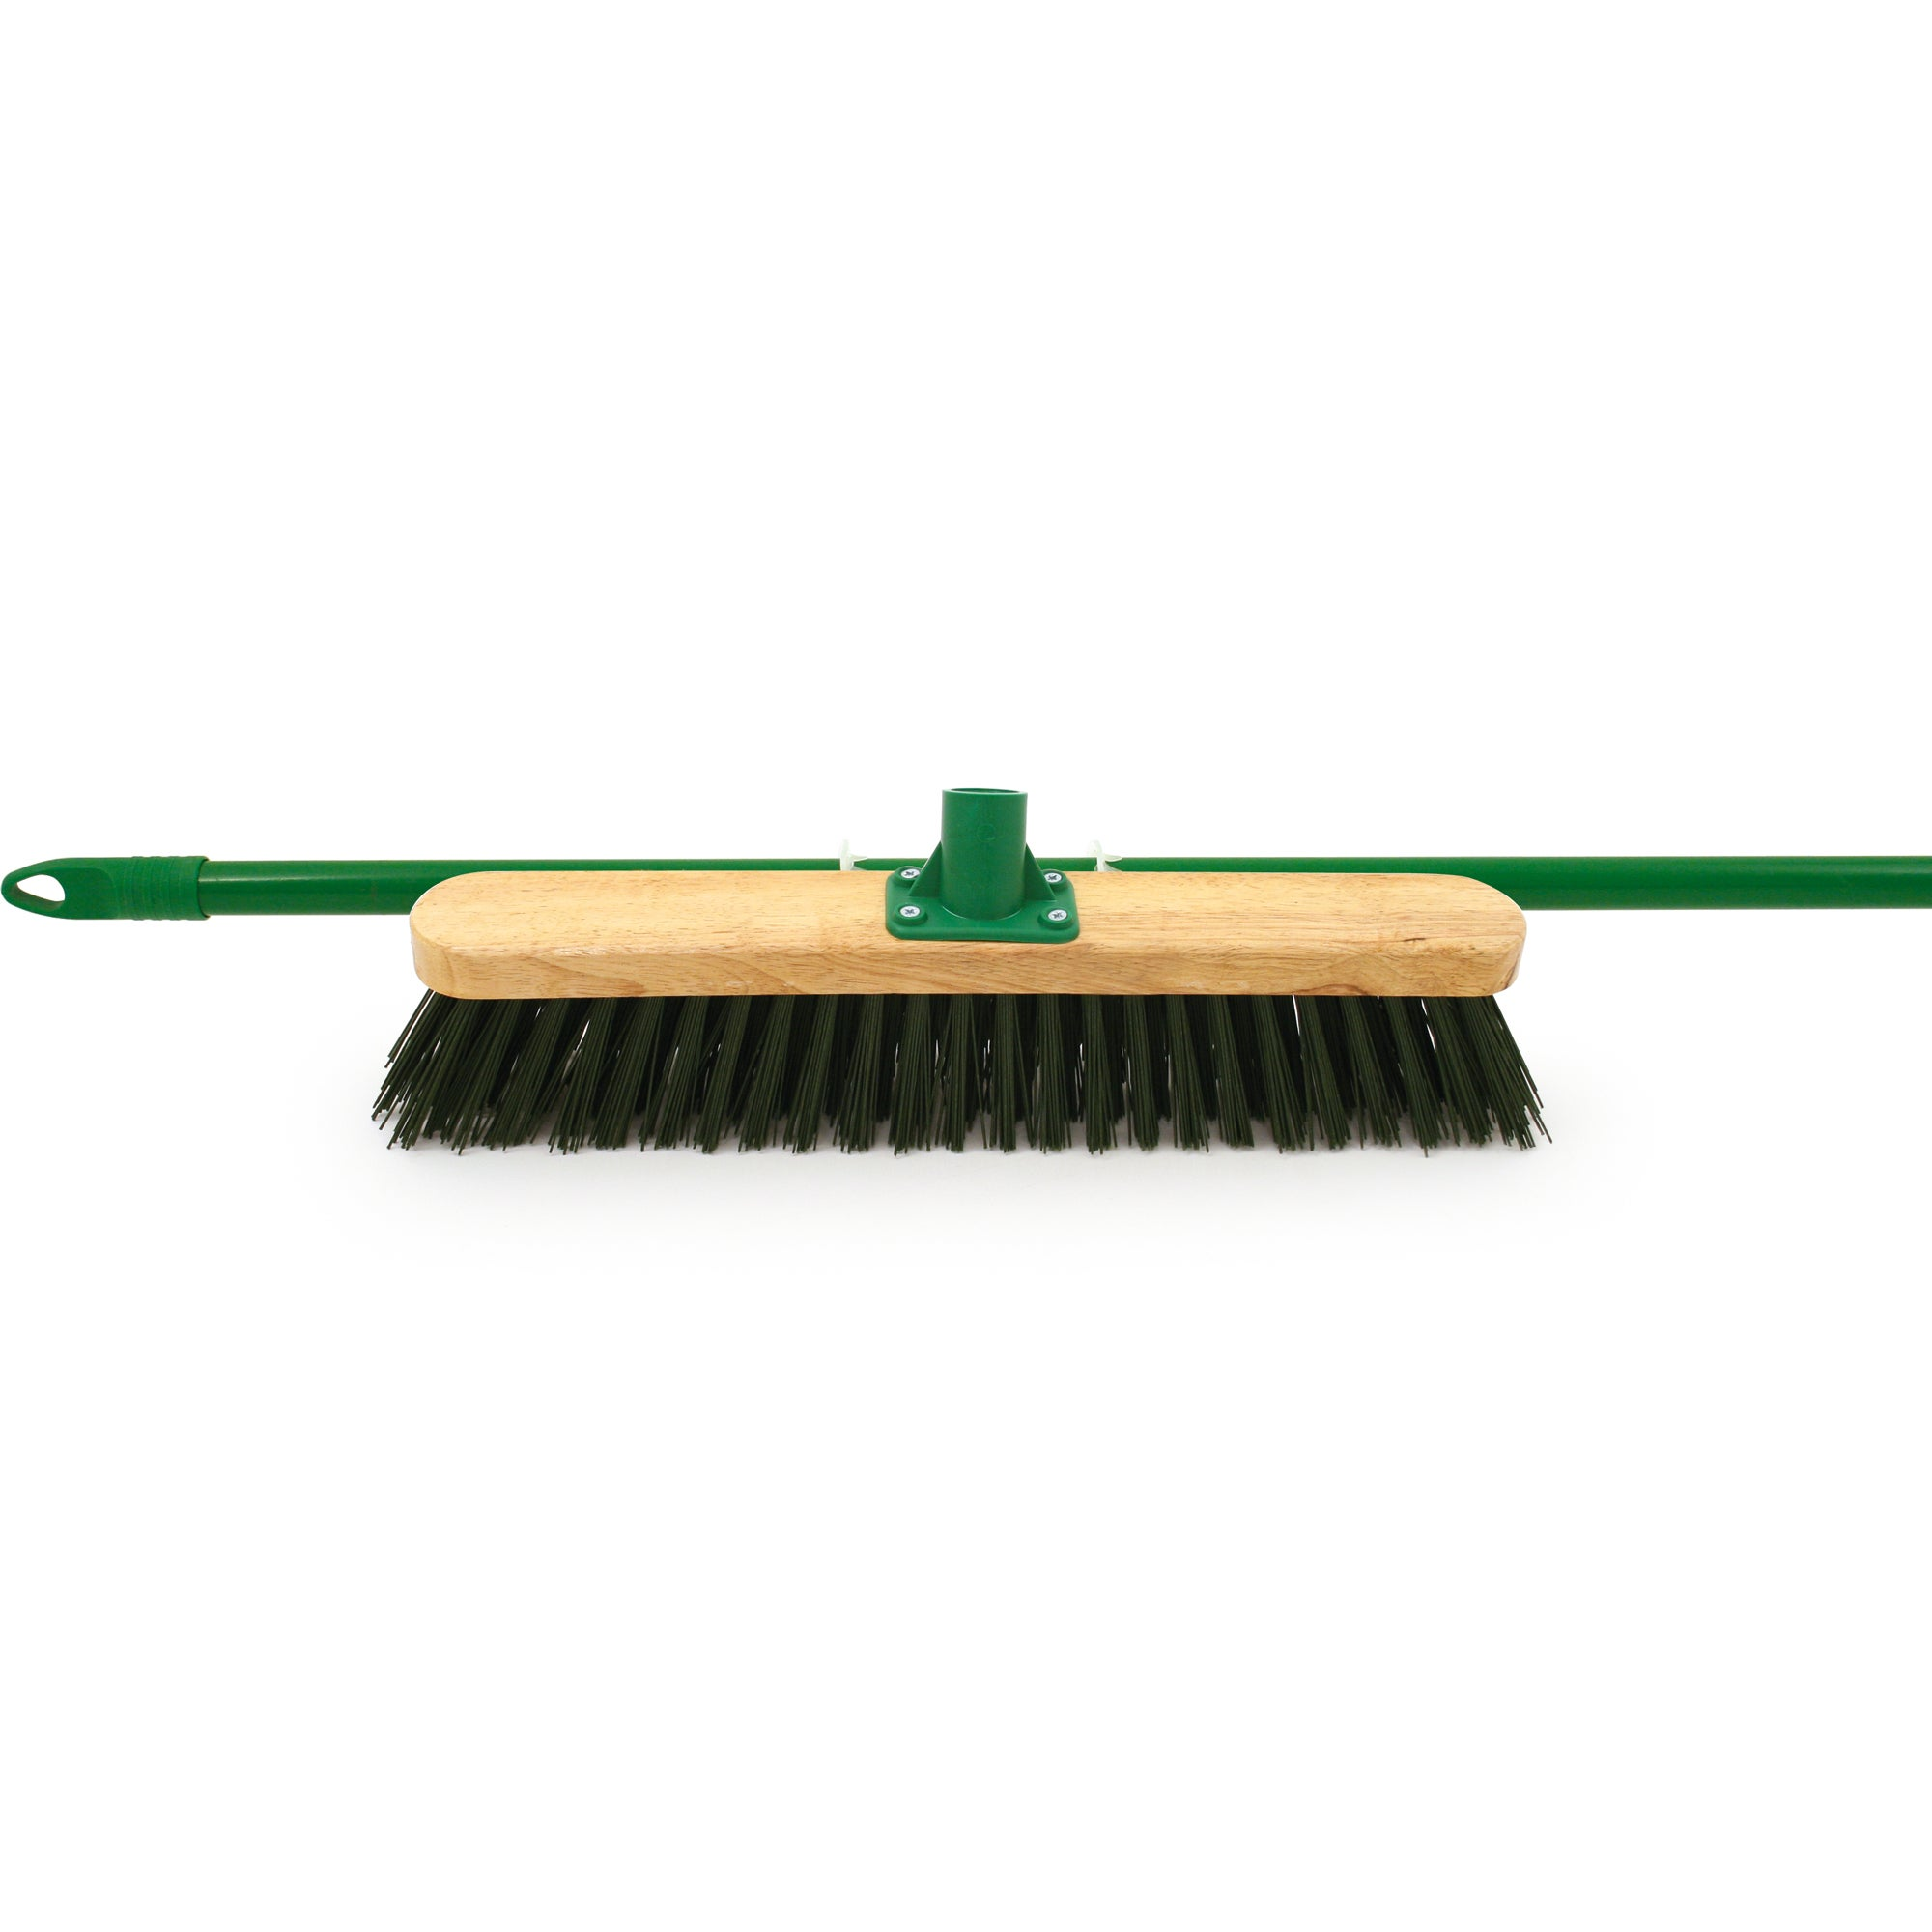 Varnished PVC Outdoor Broom